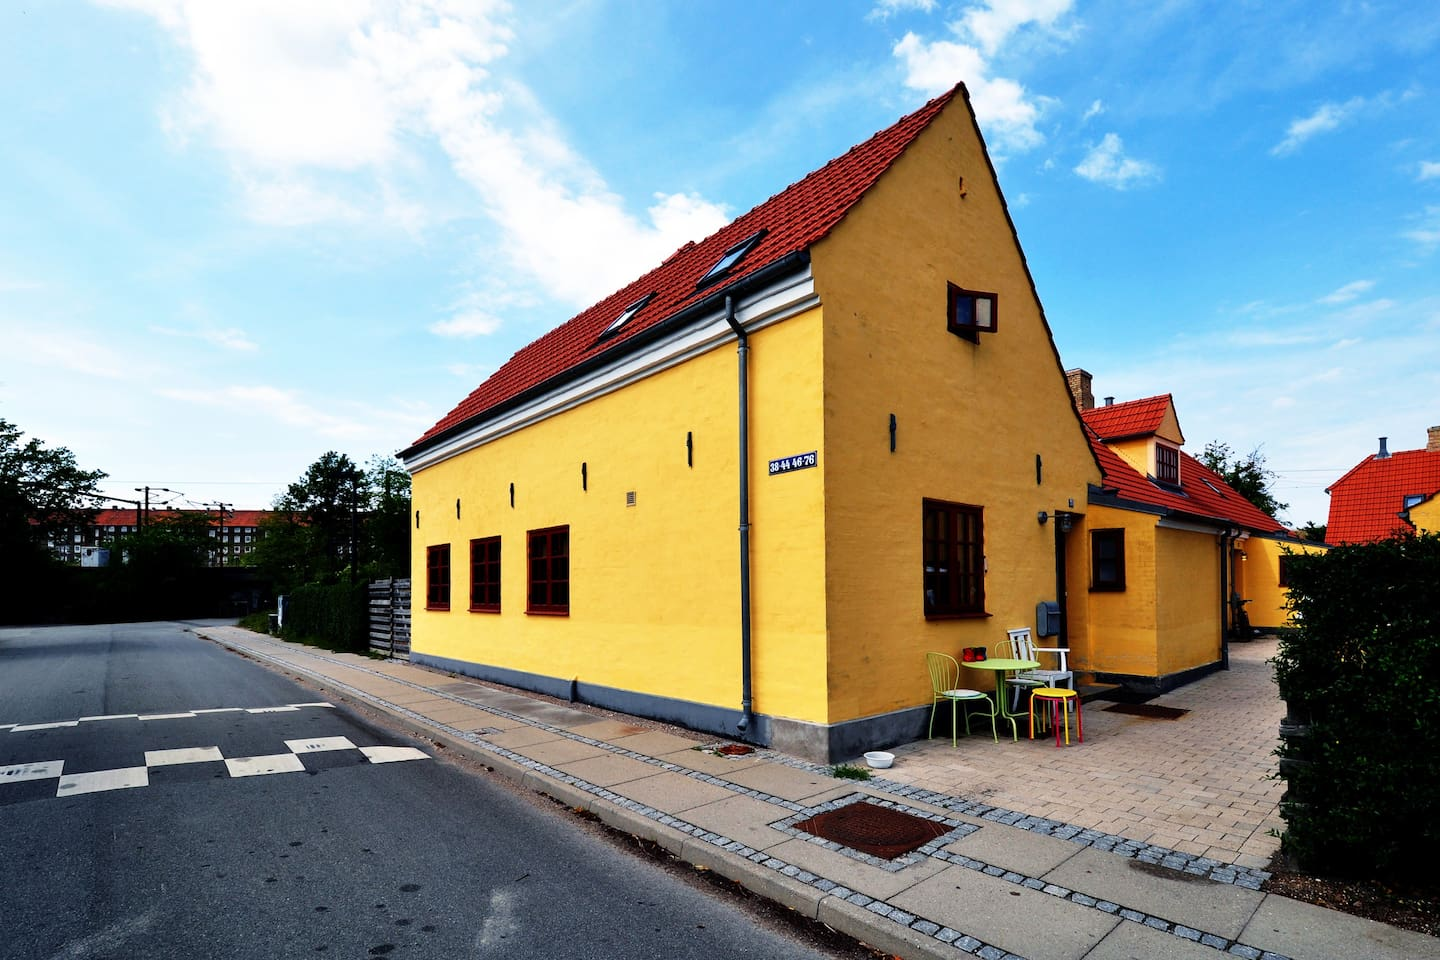 Unique place in the heart of Cph